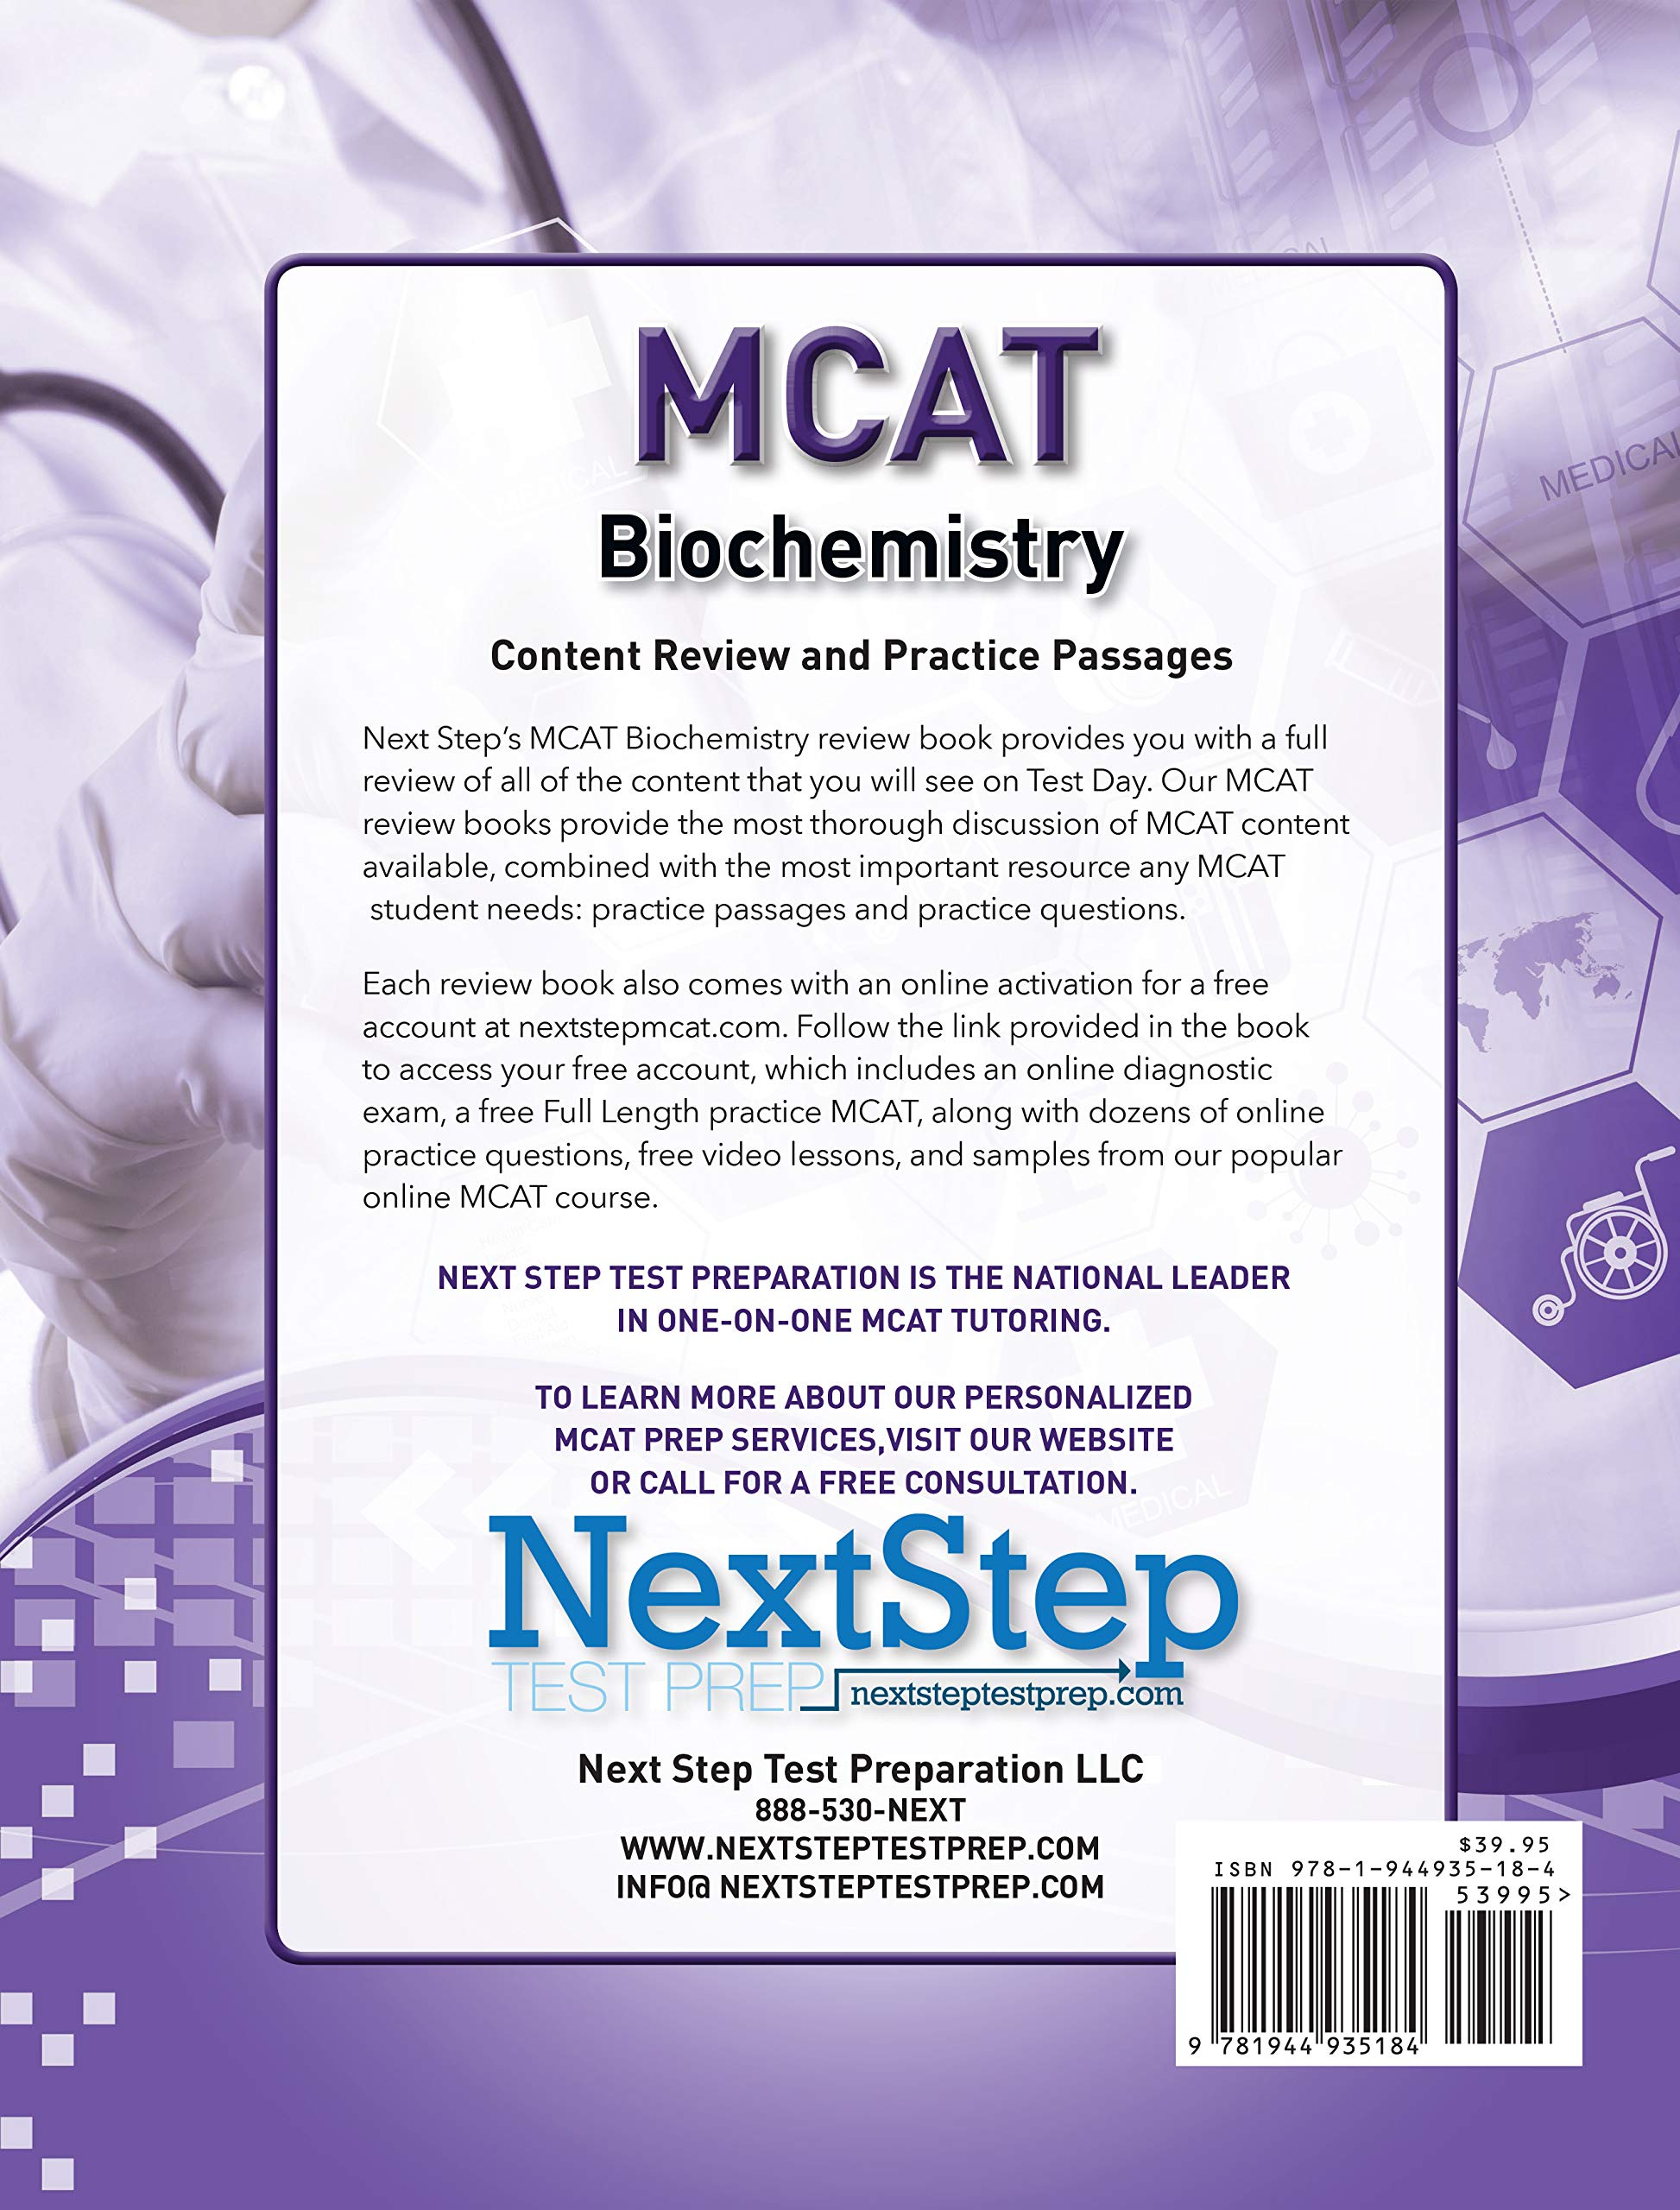 MCAT Biochemistry: Content Review and Practice Passages: Next Step